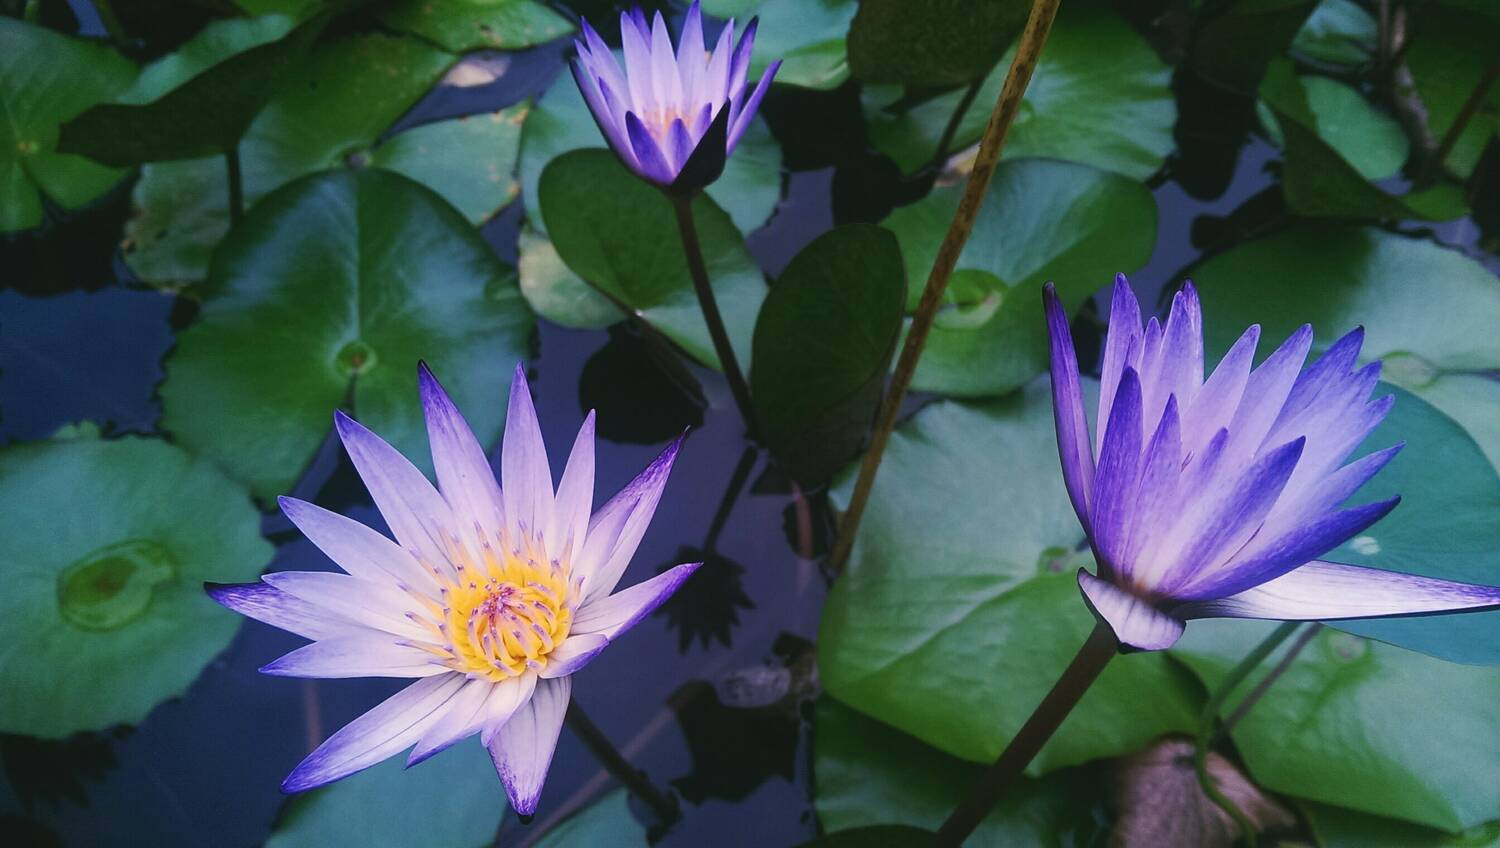 Overhead shot of violet water lilies on the surface of water - PerNaturam Shop